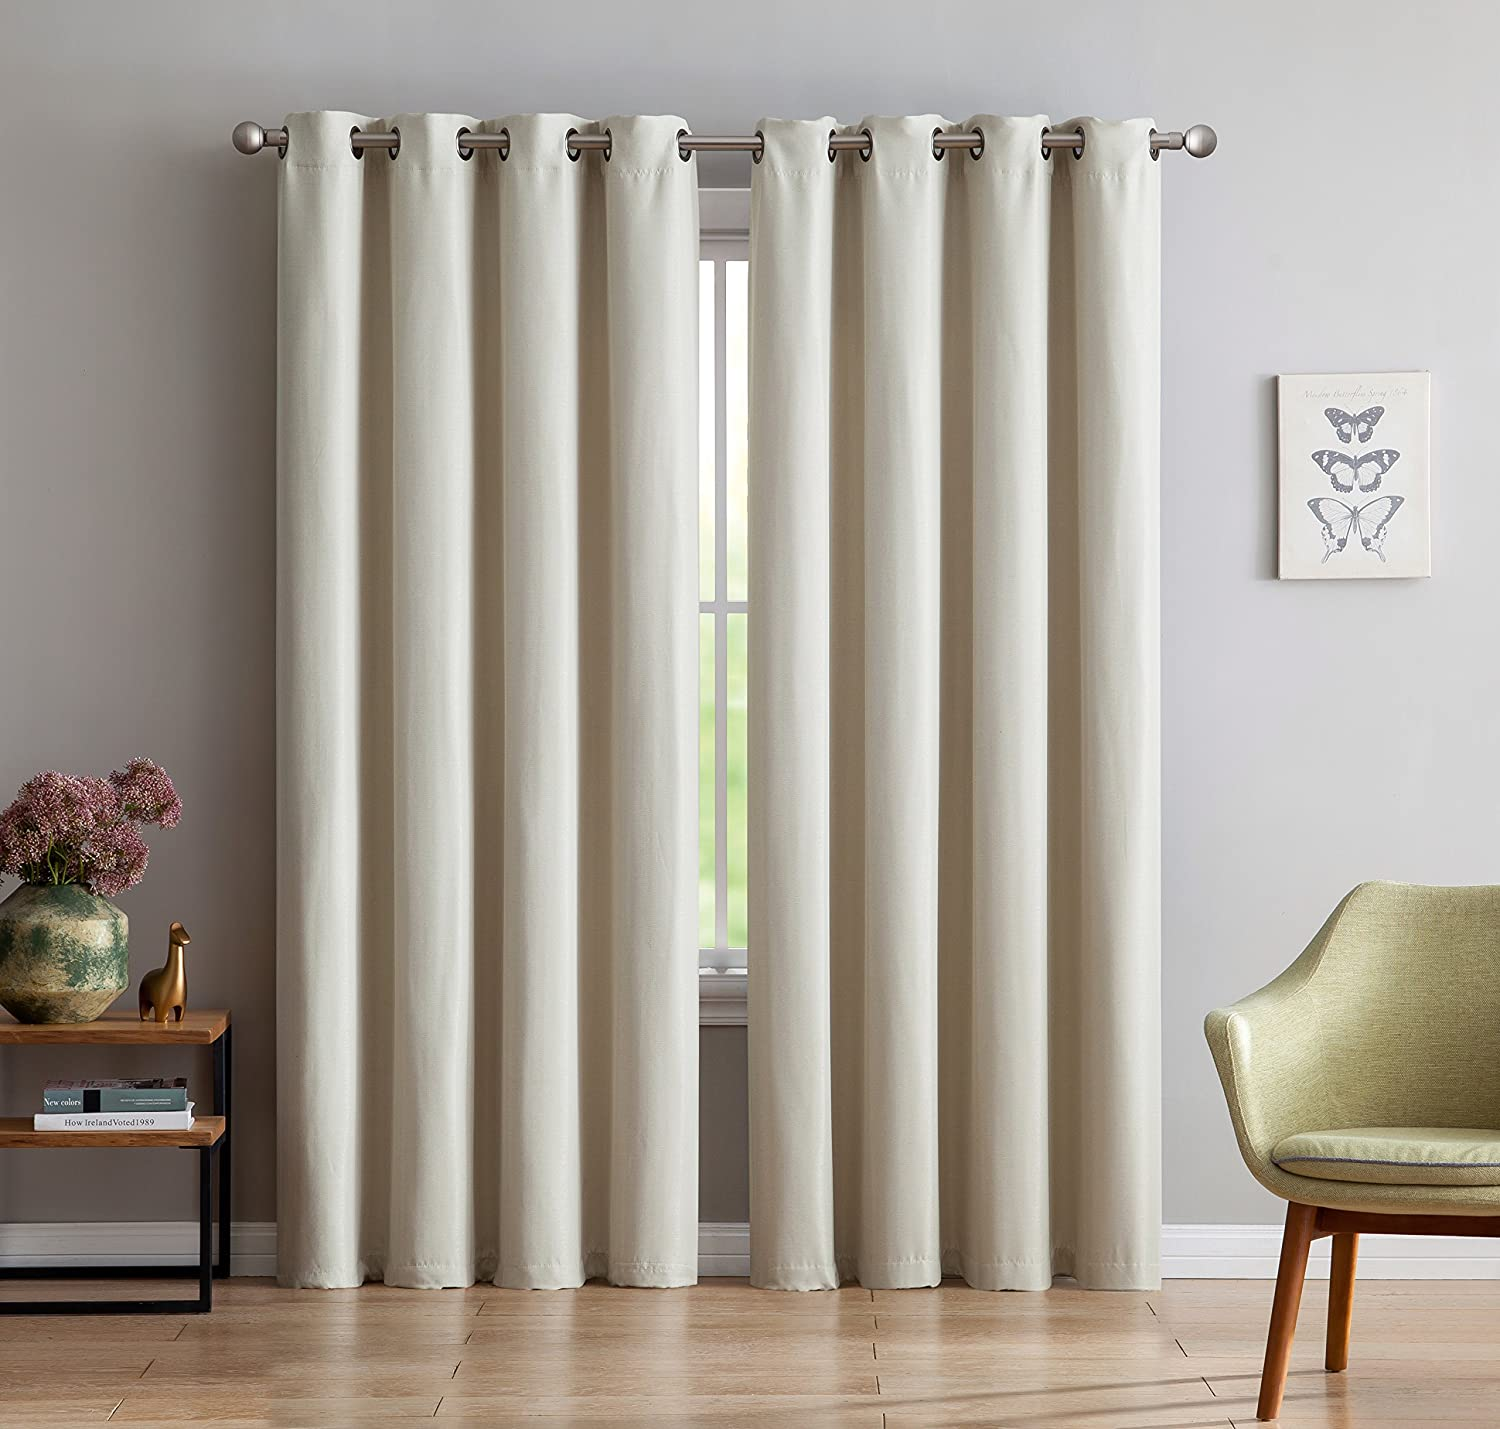 Maya - Premium Textured Thermal Weaved Heavy Duty Blackout Curtain By Linen Source - Energy Efficient - Noise Reduction